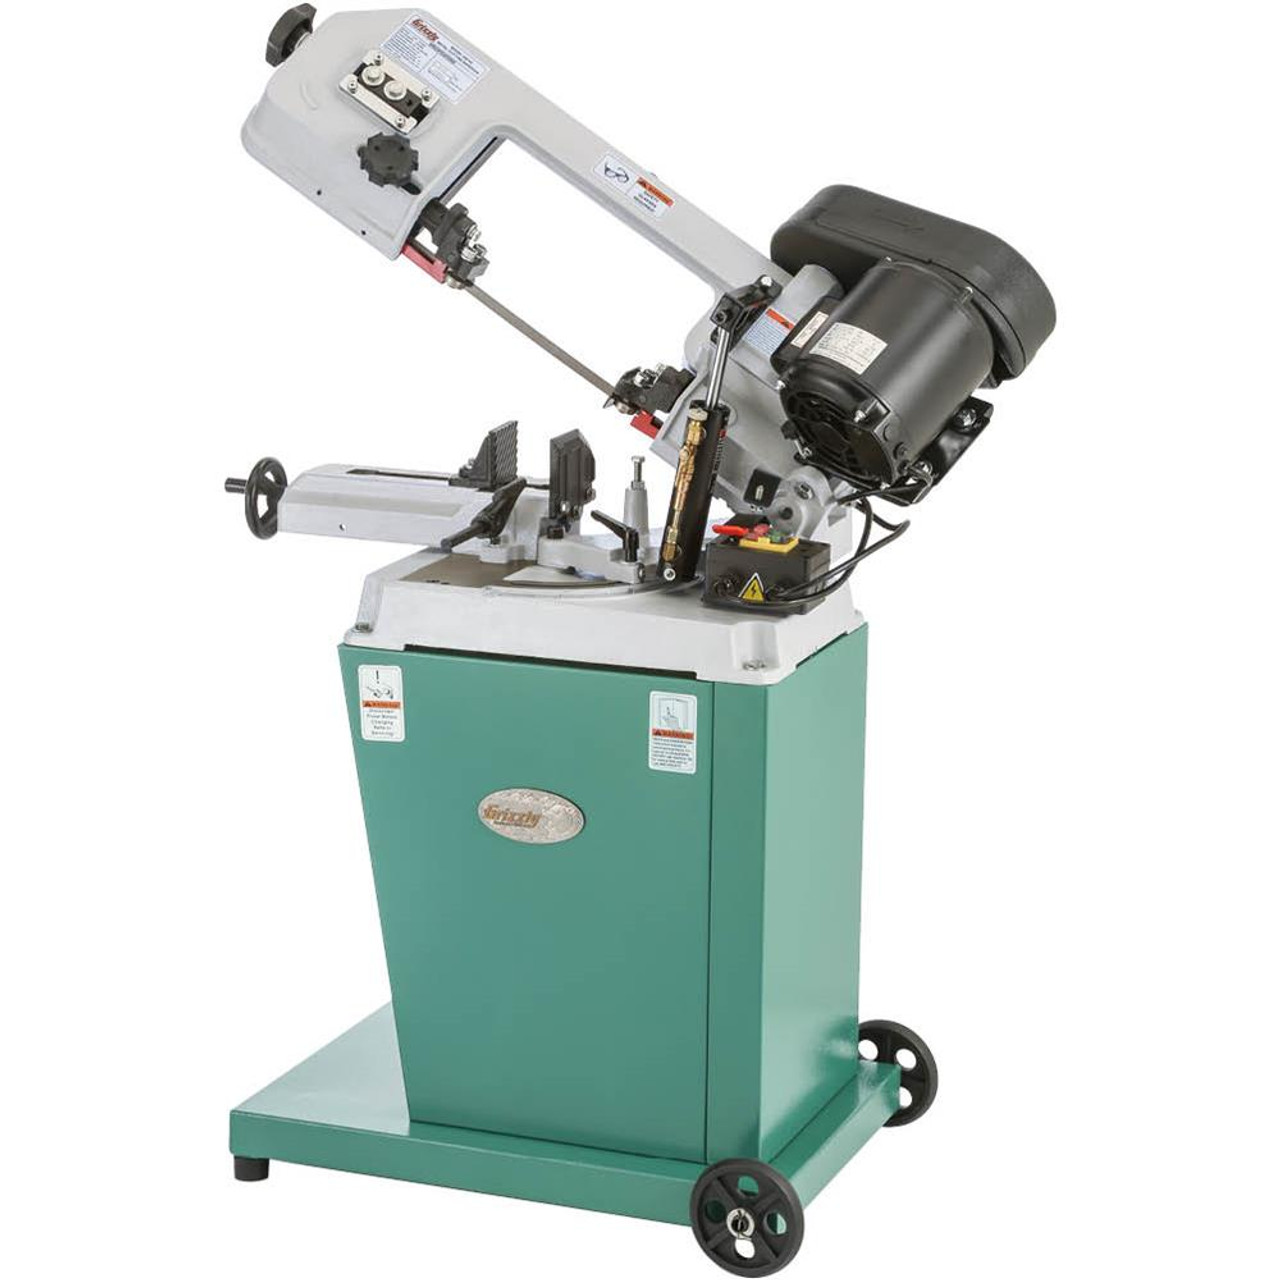 Grizzly 16 Inch Bandsaw